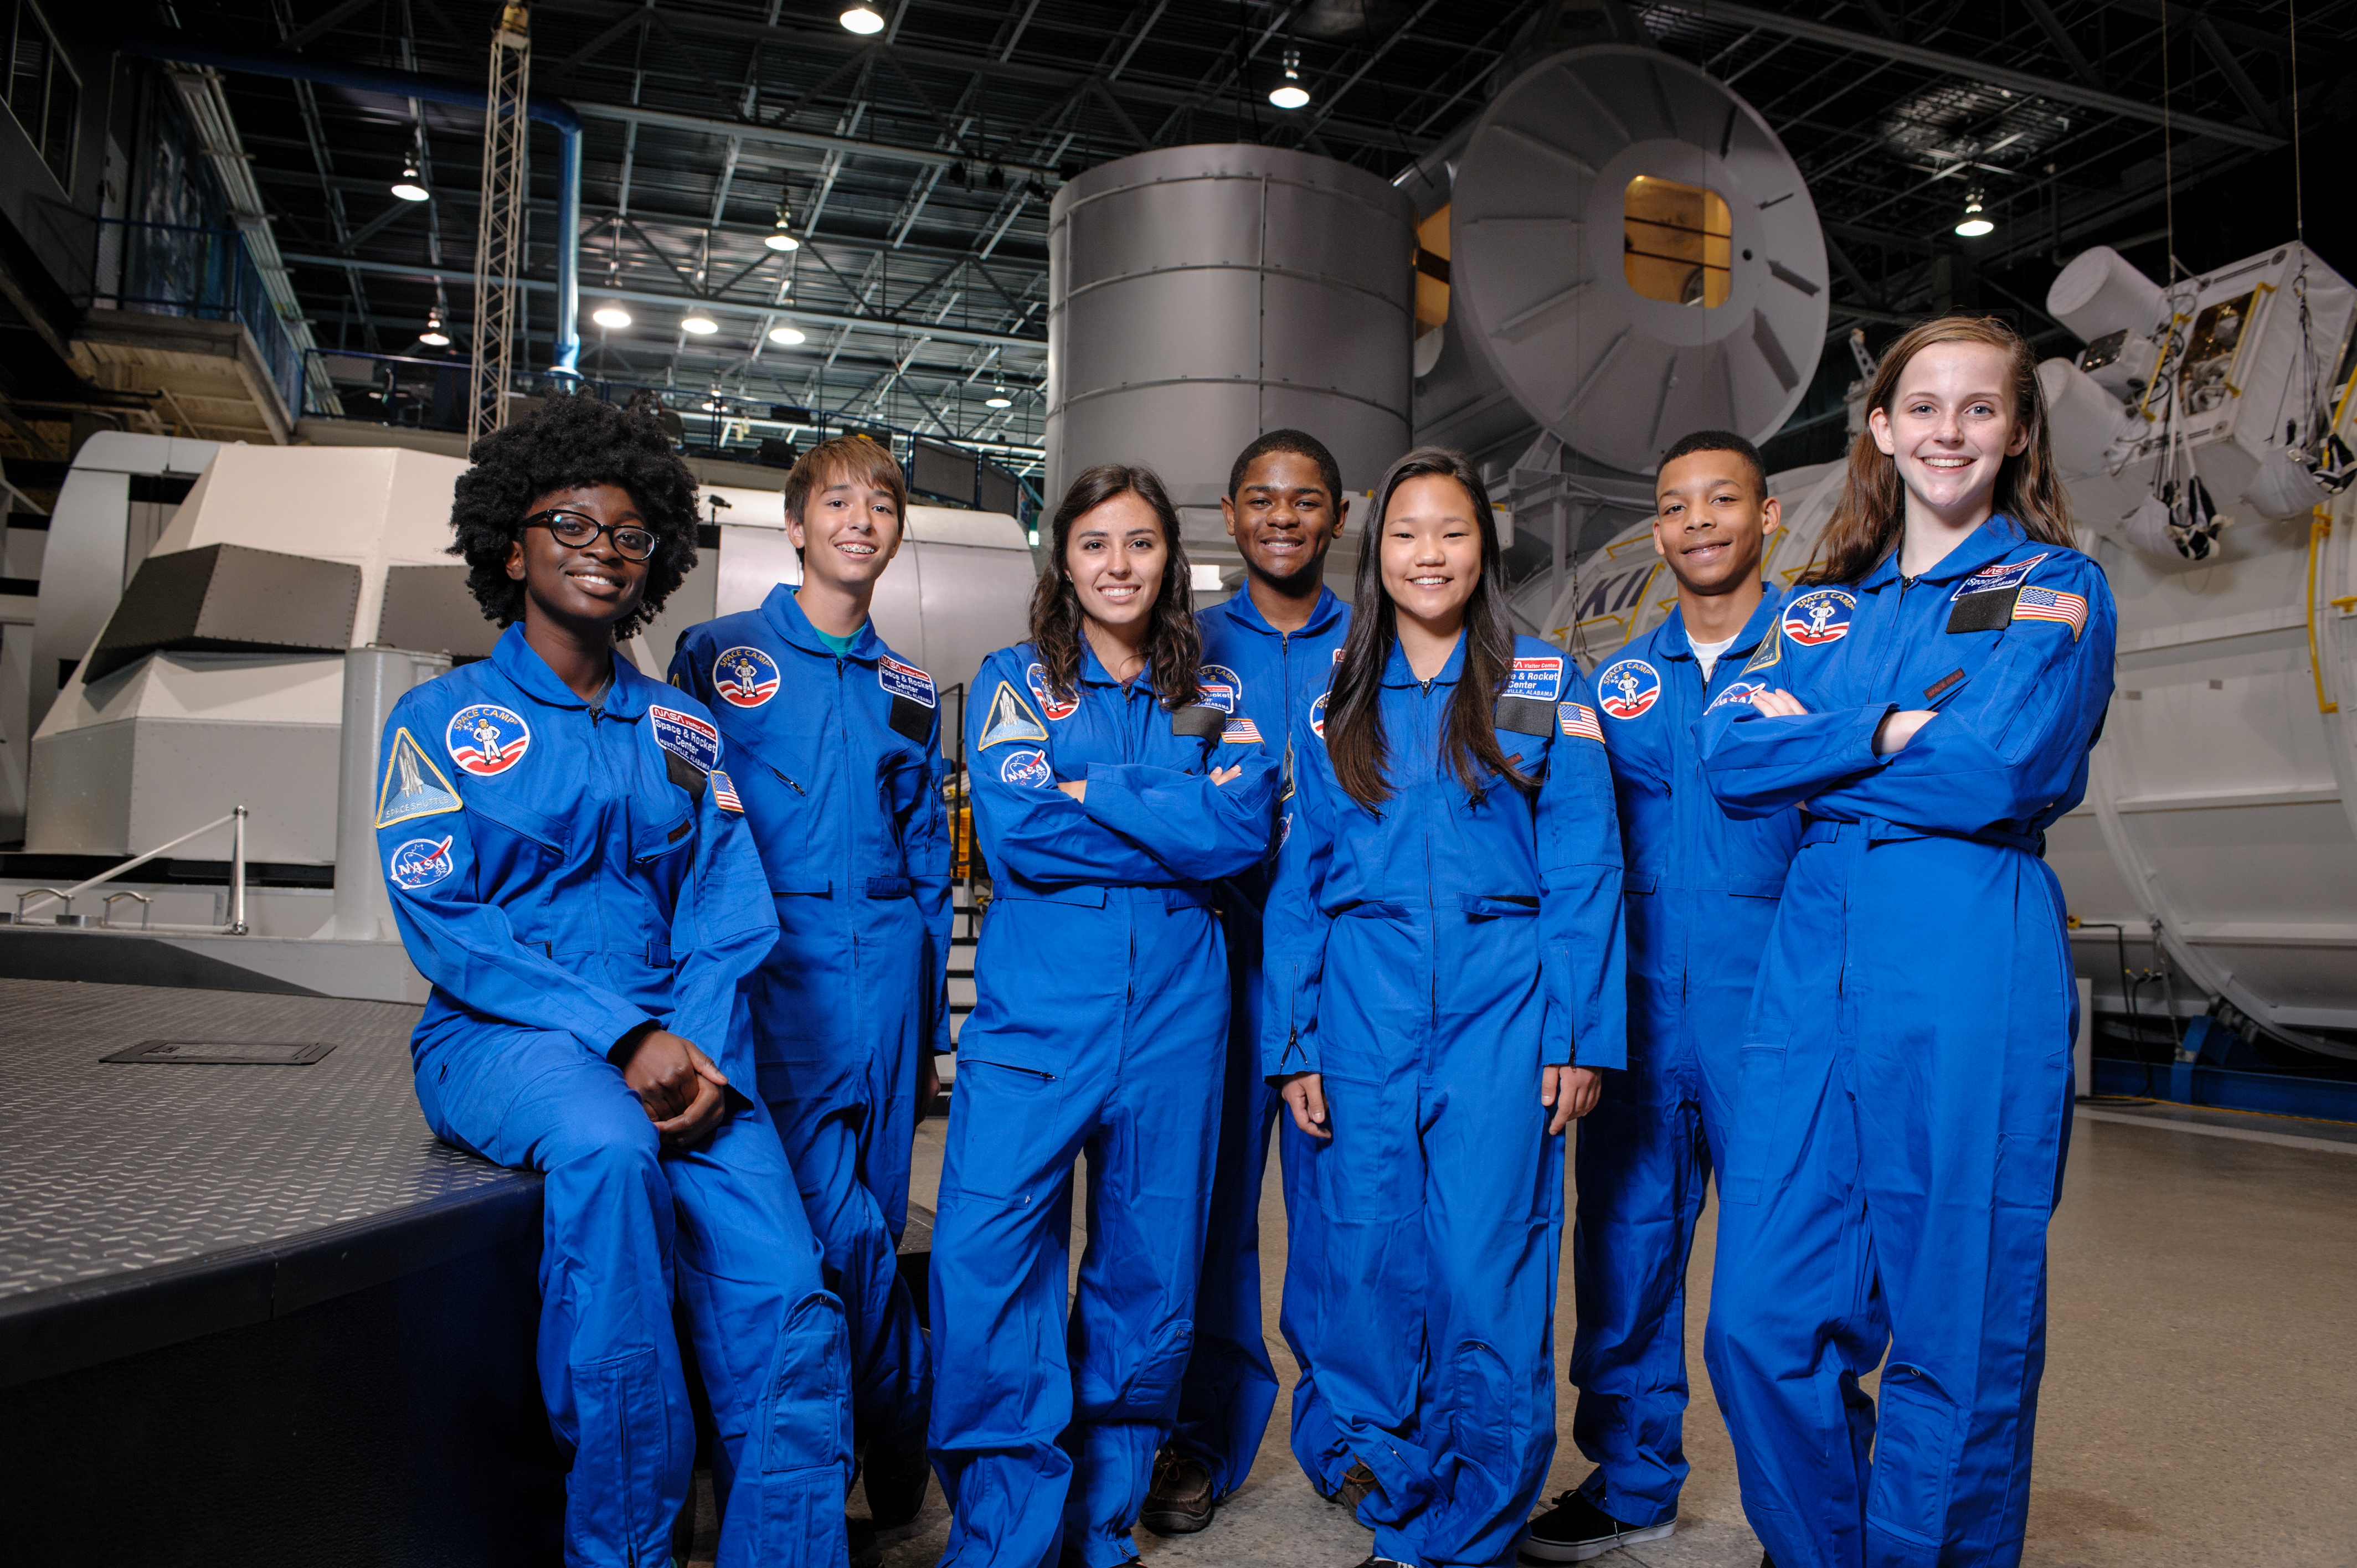 nasa space camp for kids - HD2128×1416